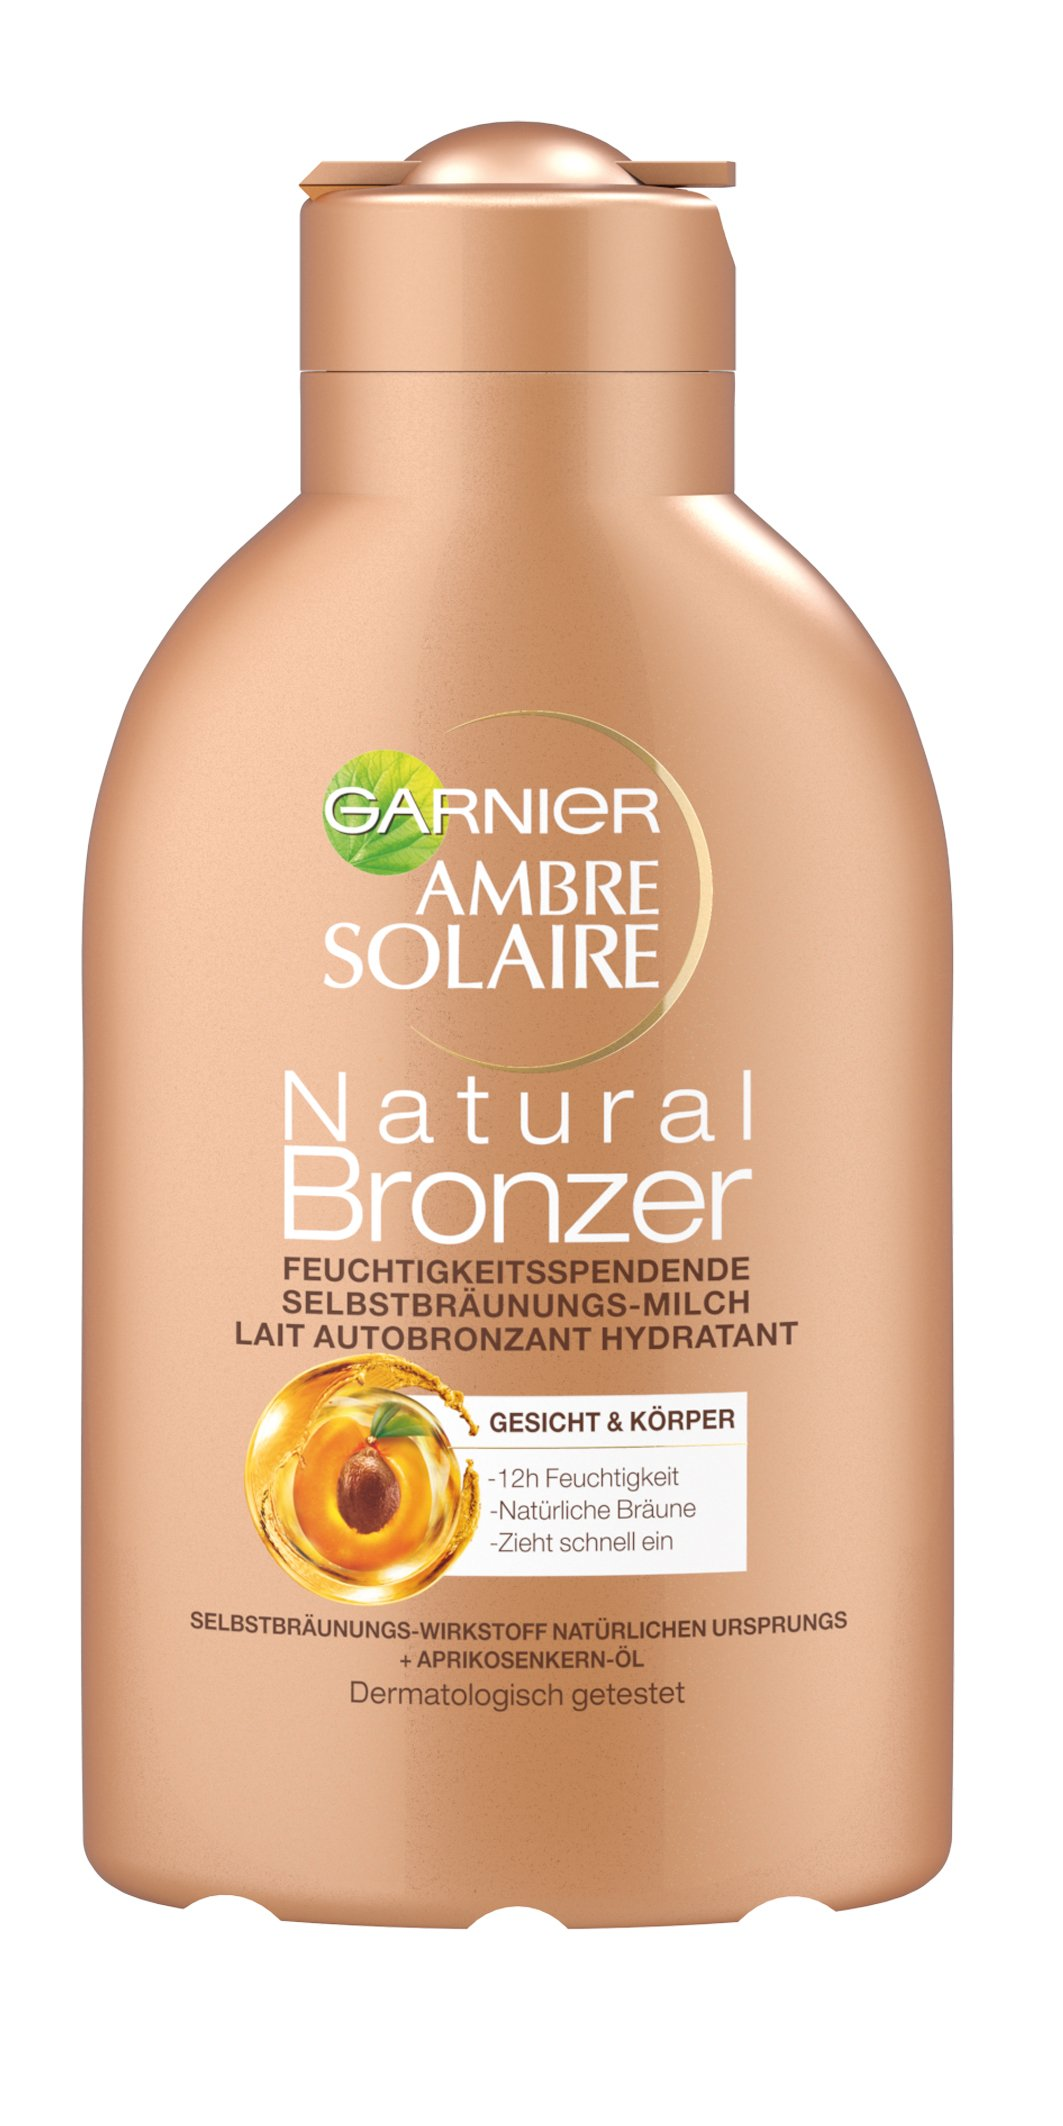 Garnier Ambre Solaire Self-Tanning Perfect Bronzer Milk